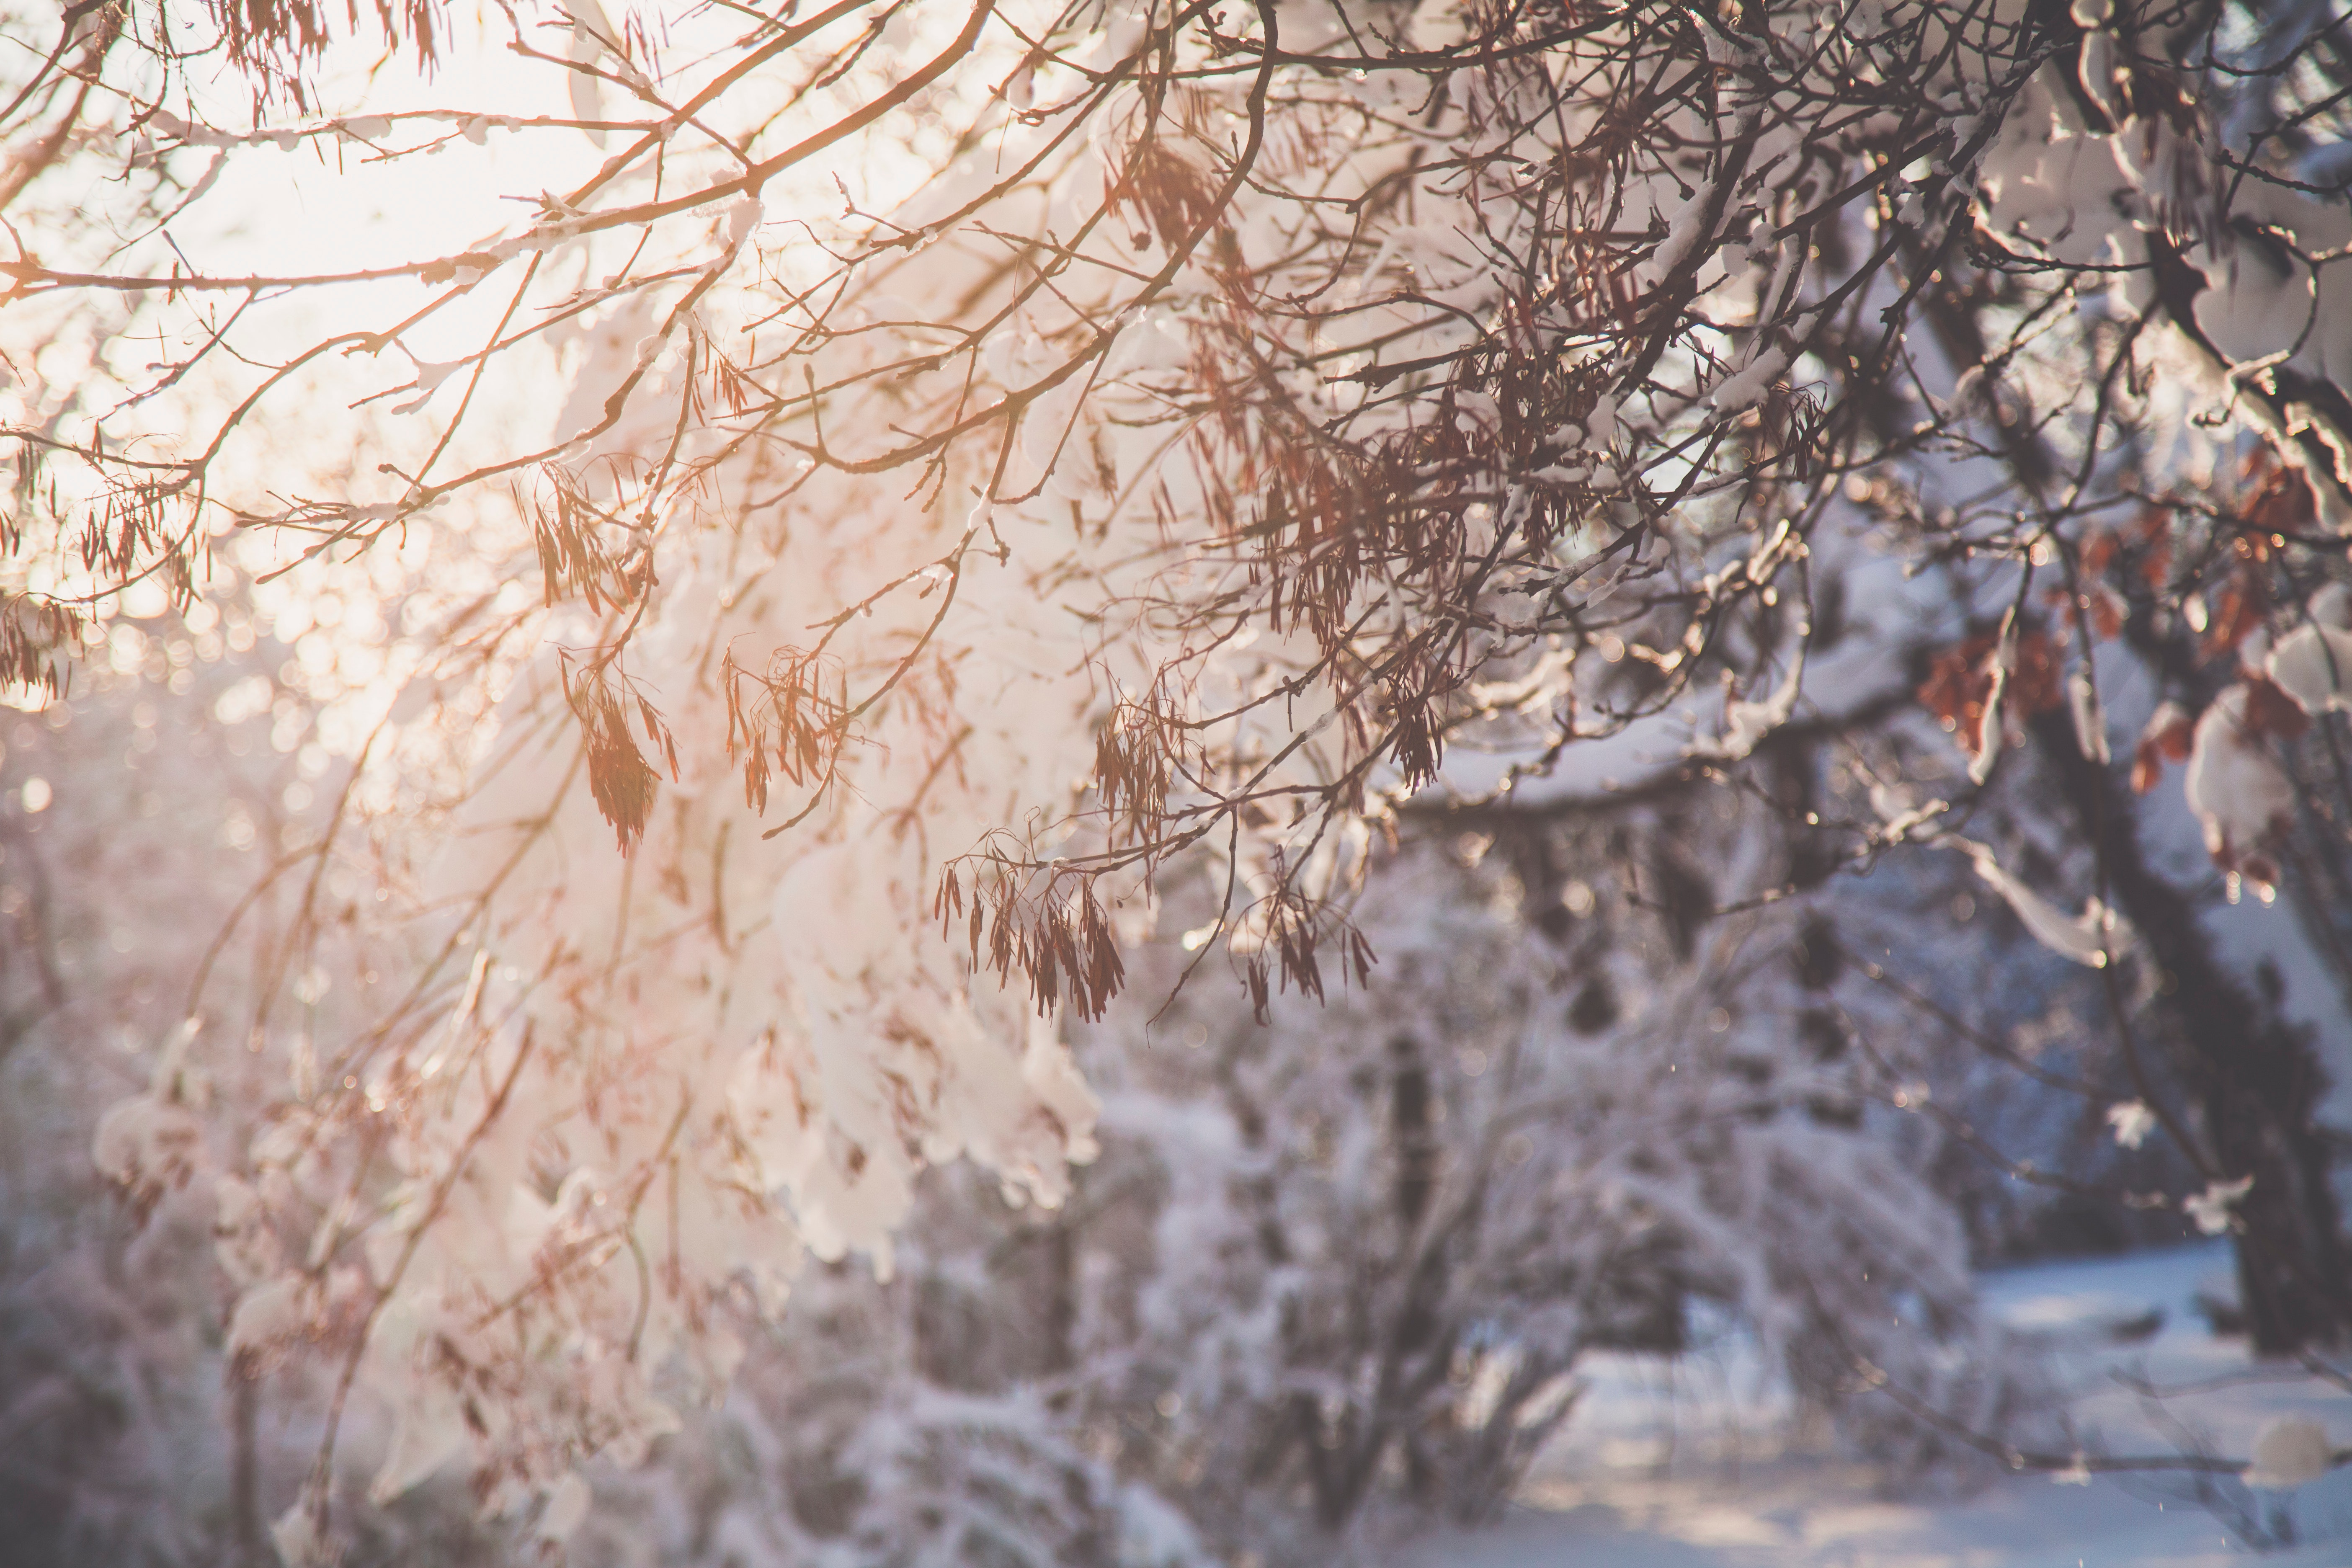 Closeup photo of tree branch with snow